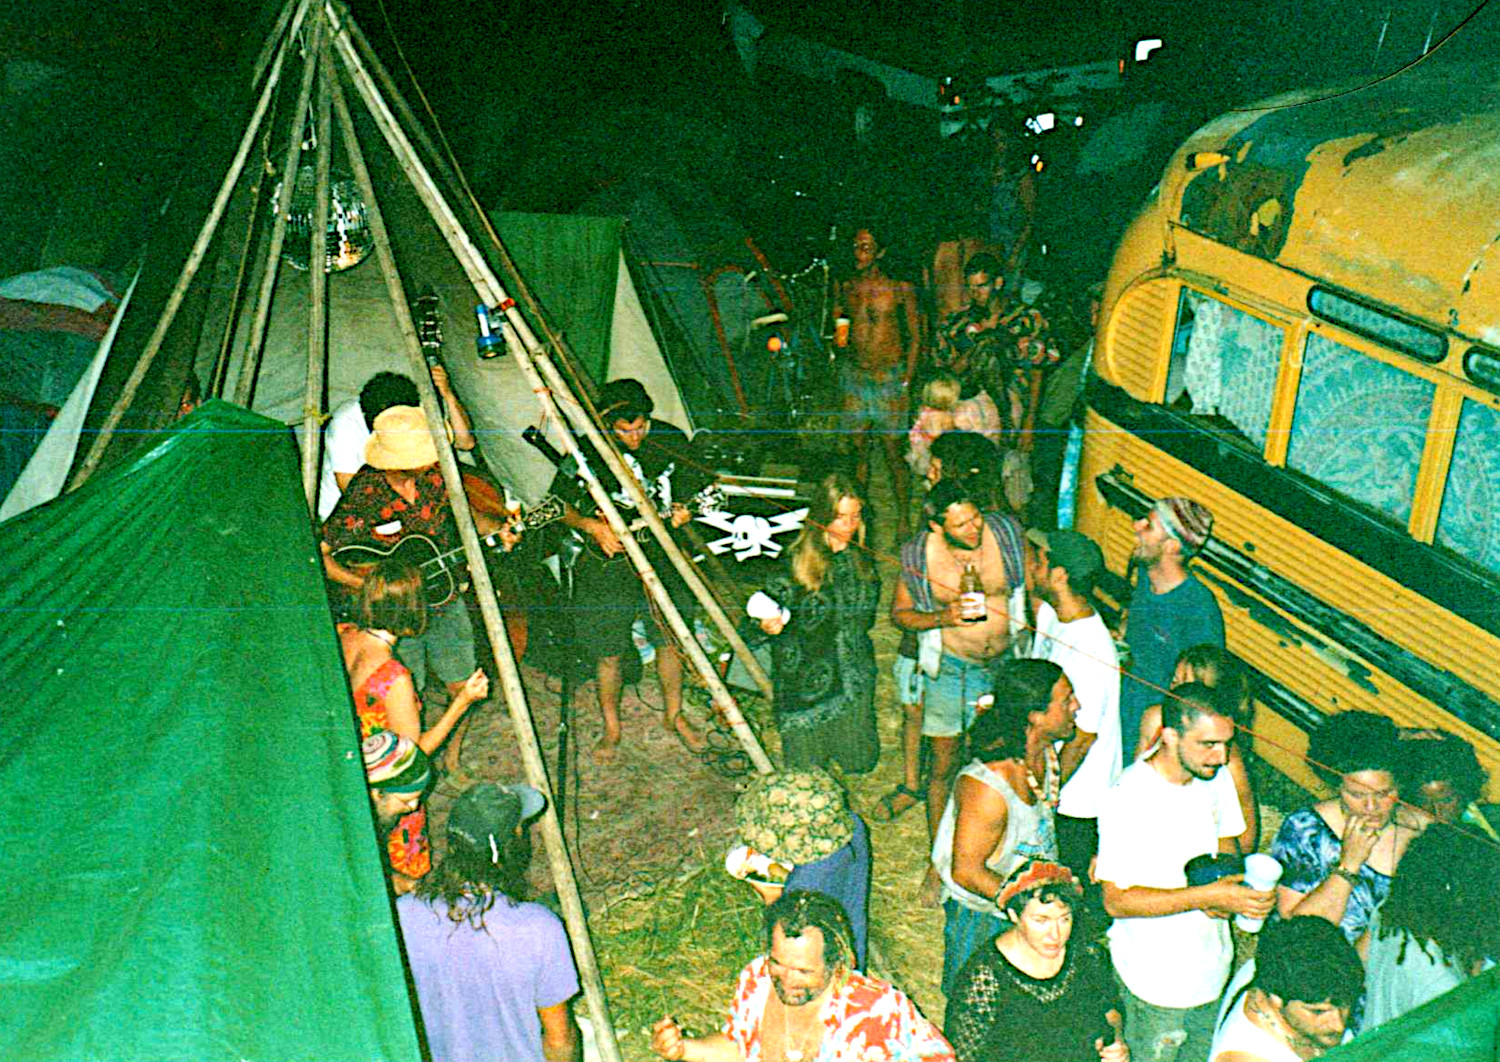 CC_OCF_Teepee party View.jpg